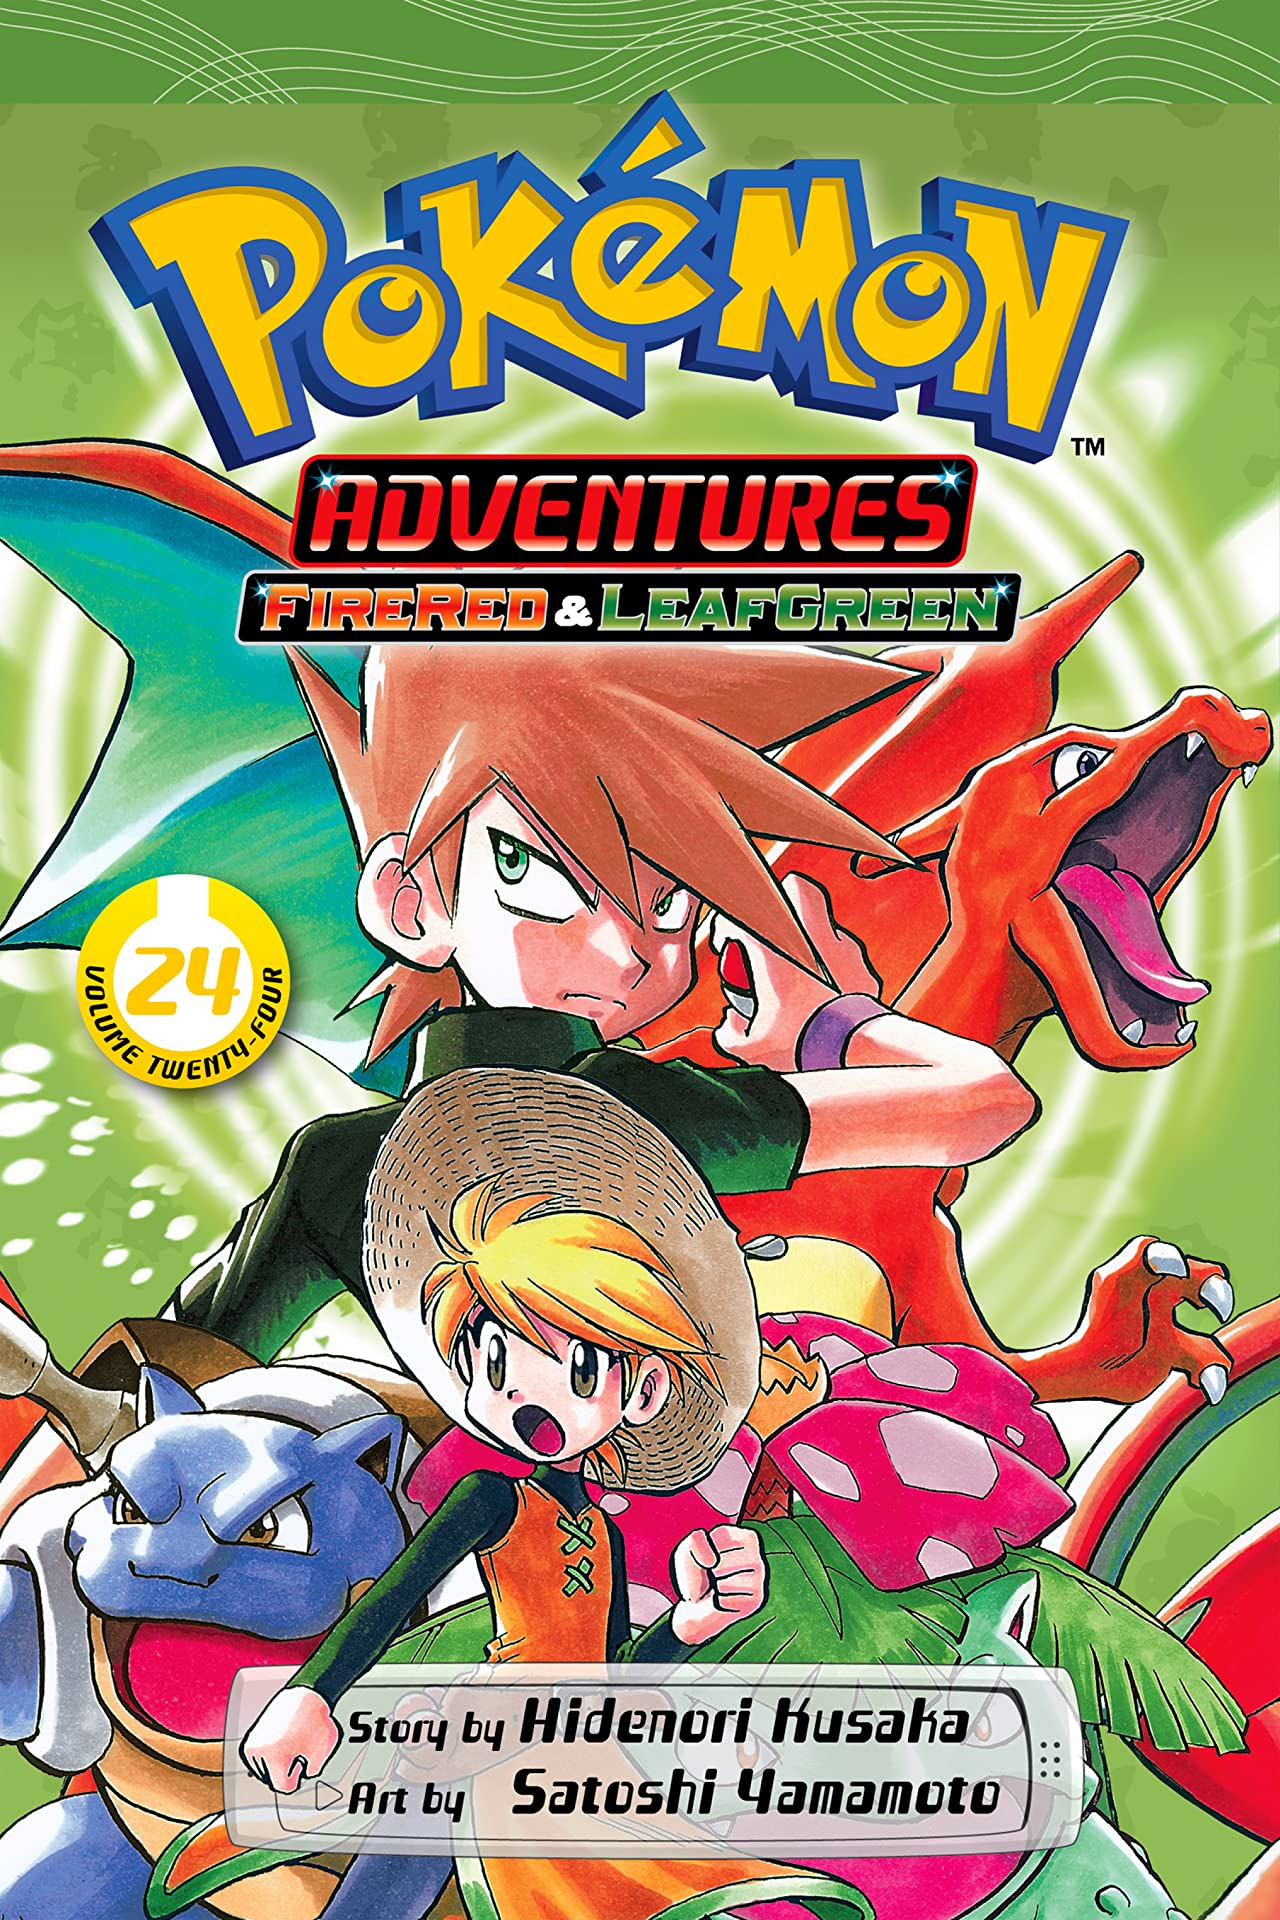 Pokémon Adventures (FireRed and LeafGreen) Vol. 24